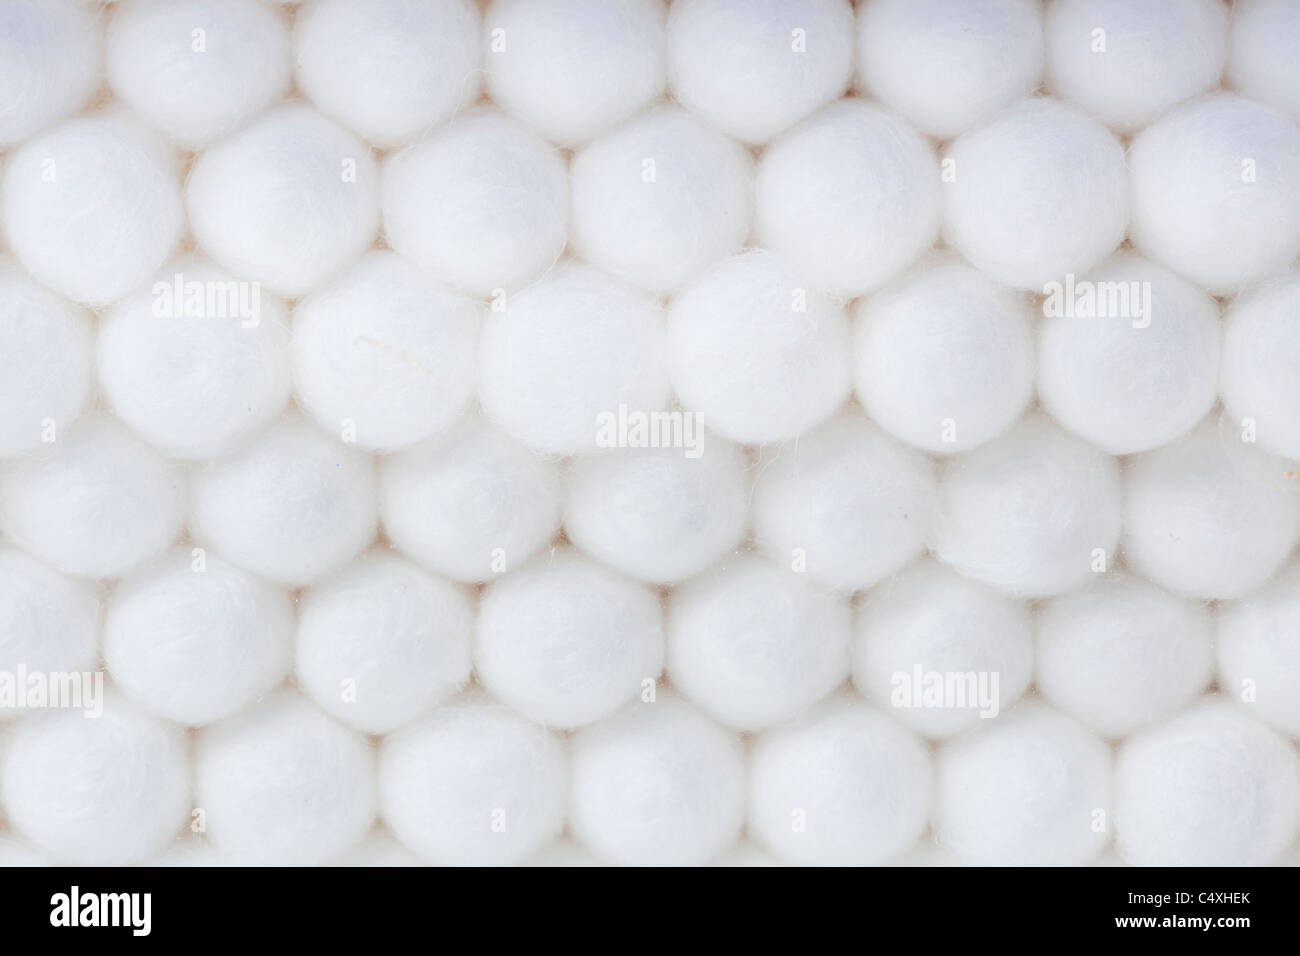 A group of cotton swabs against a white background Stock Photo